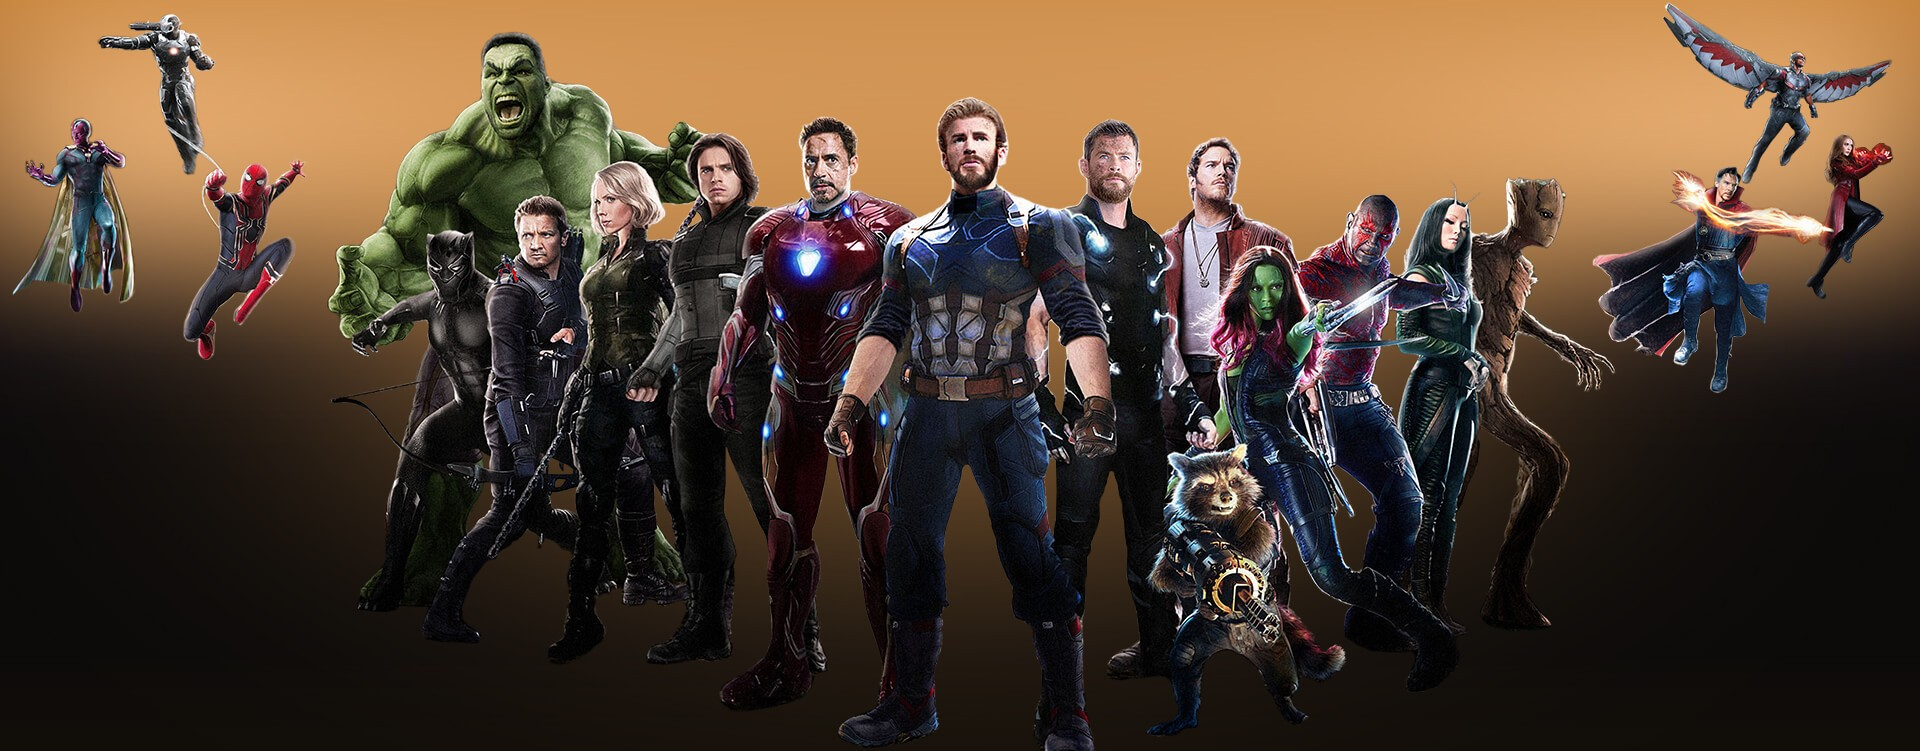 Get ready for THE AVENGERS 3: INFINITY WAR, Select Cosplay Costumes just for you.